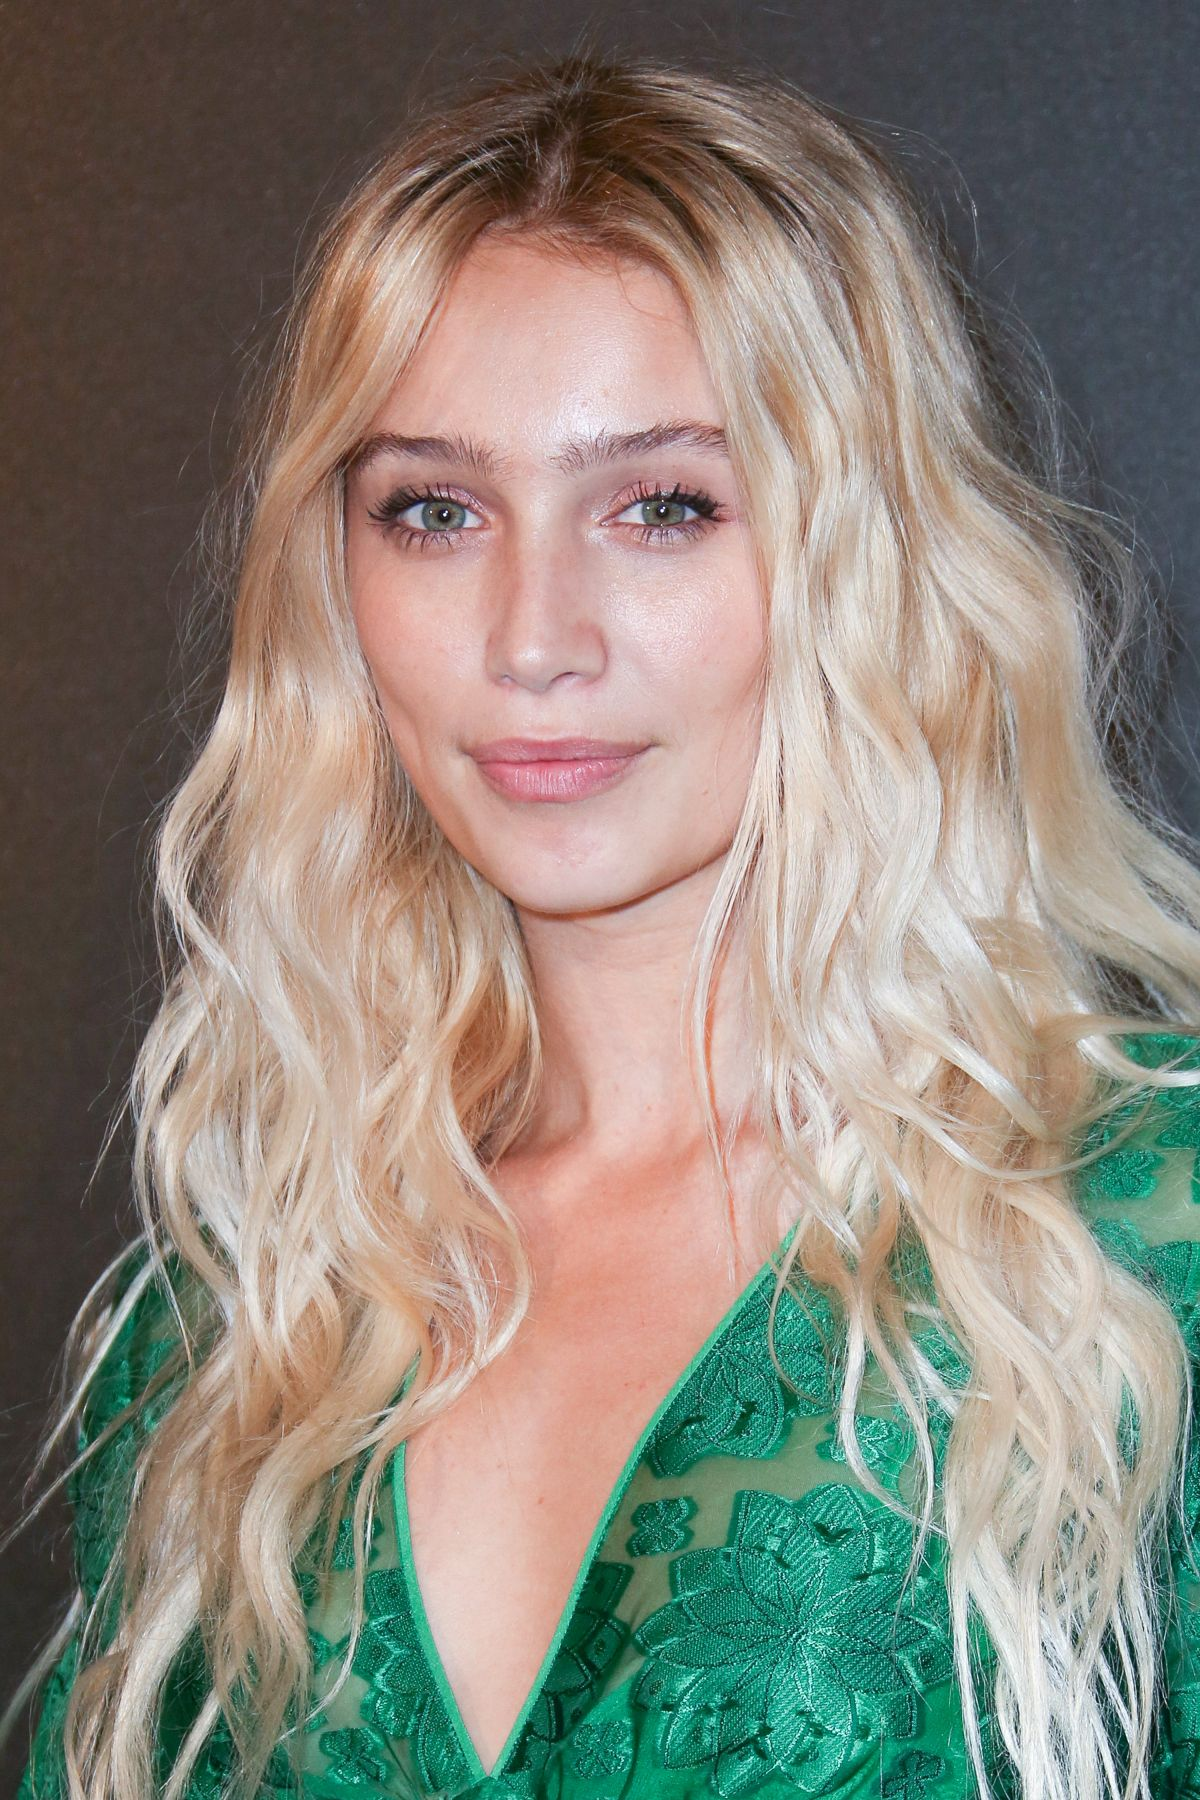 ICloud Cailin Russo nudes (71 photos), Topless, Cleavage, Selfie, see through 2019